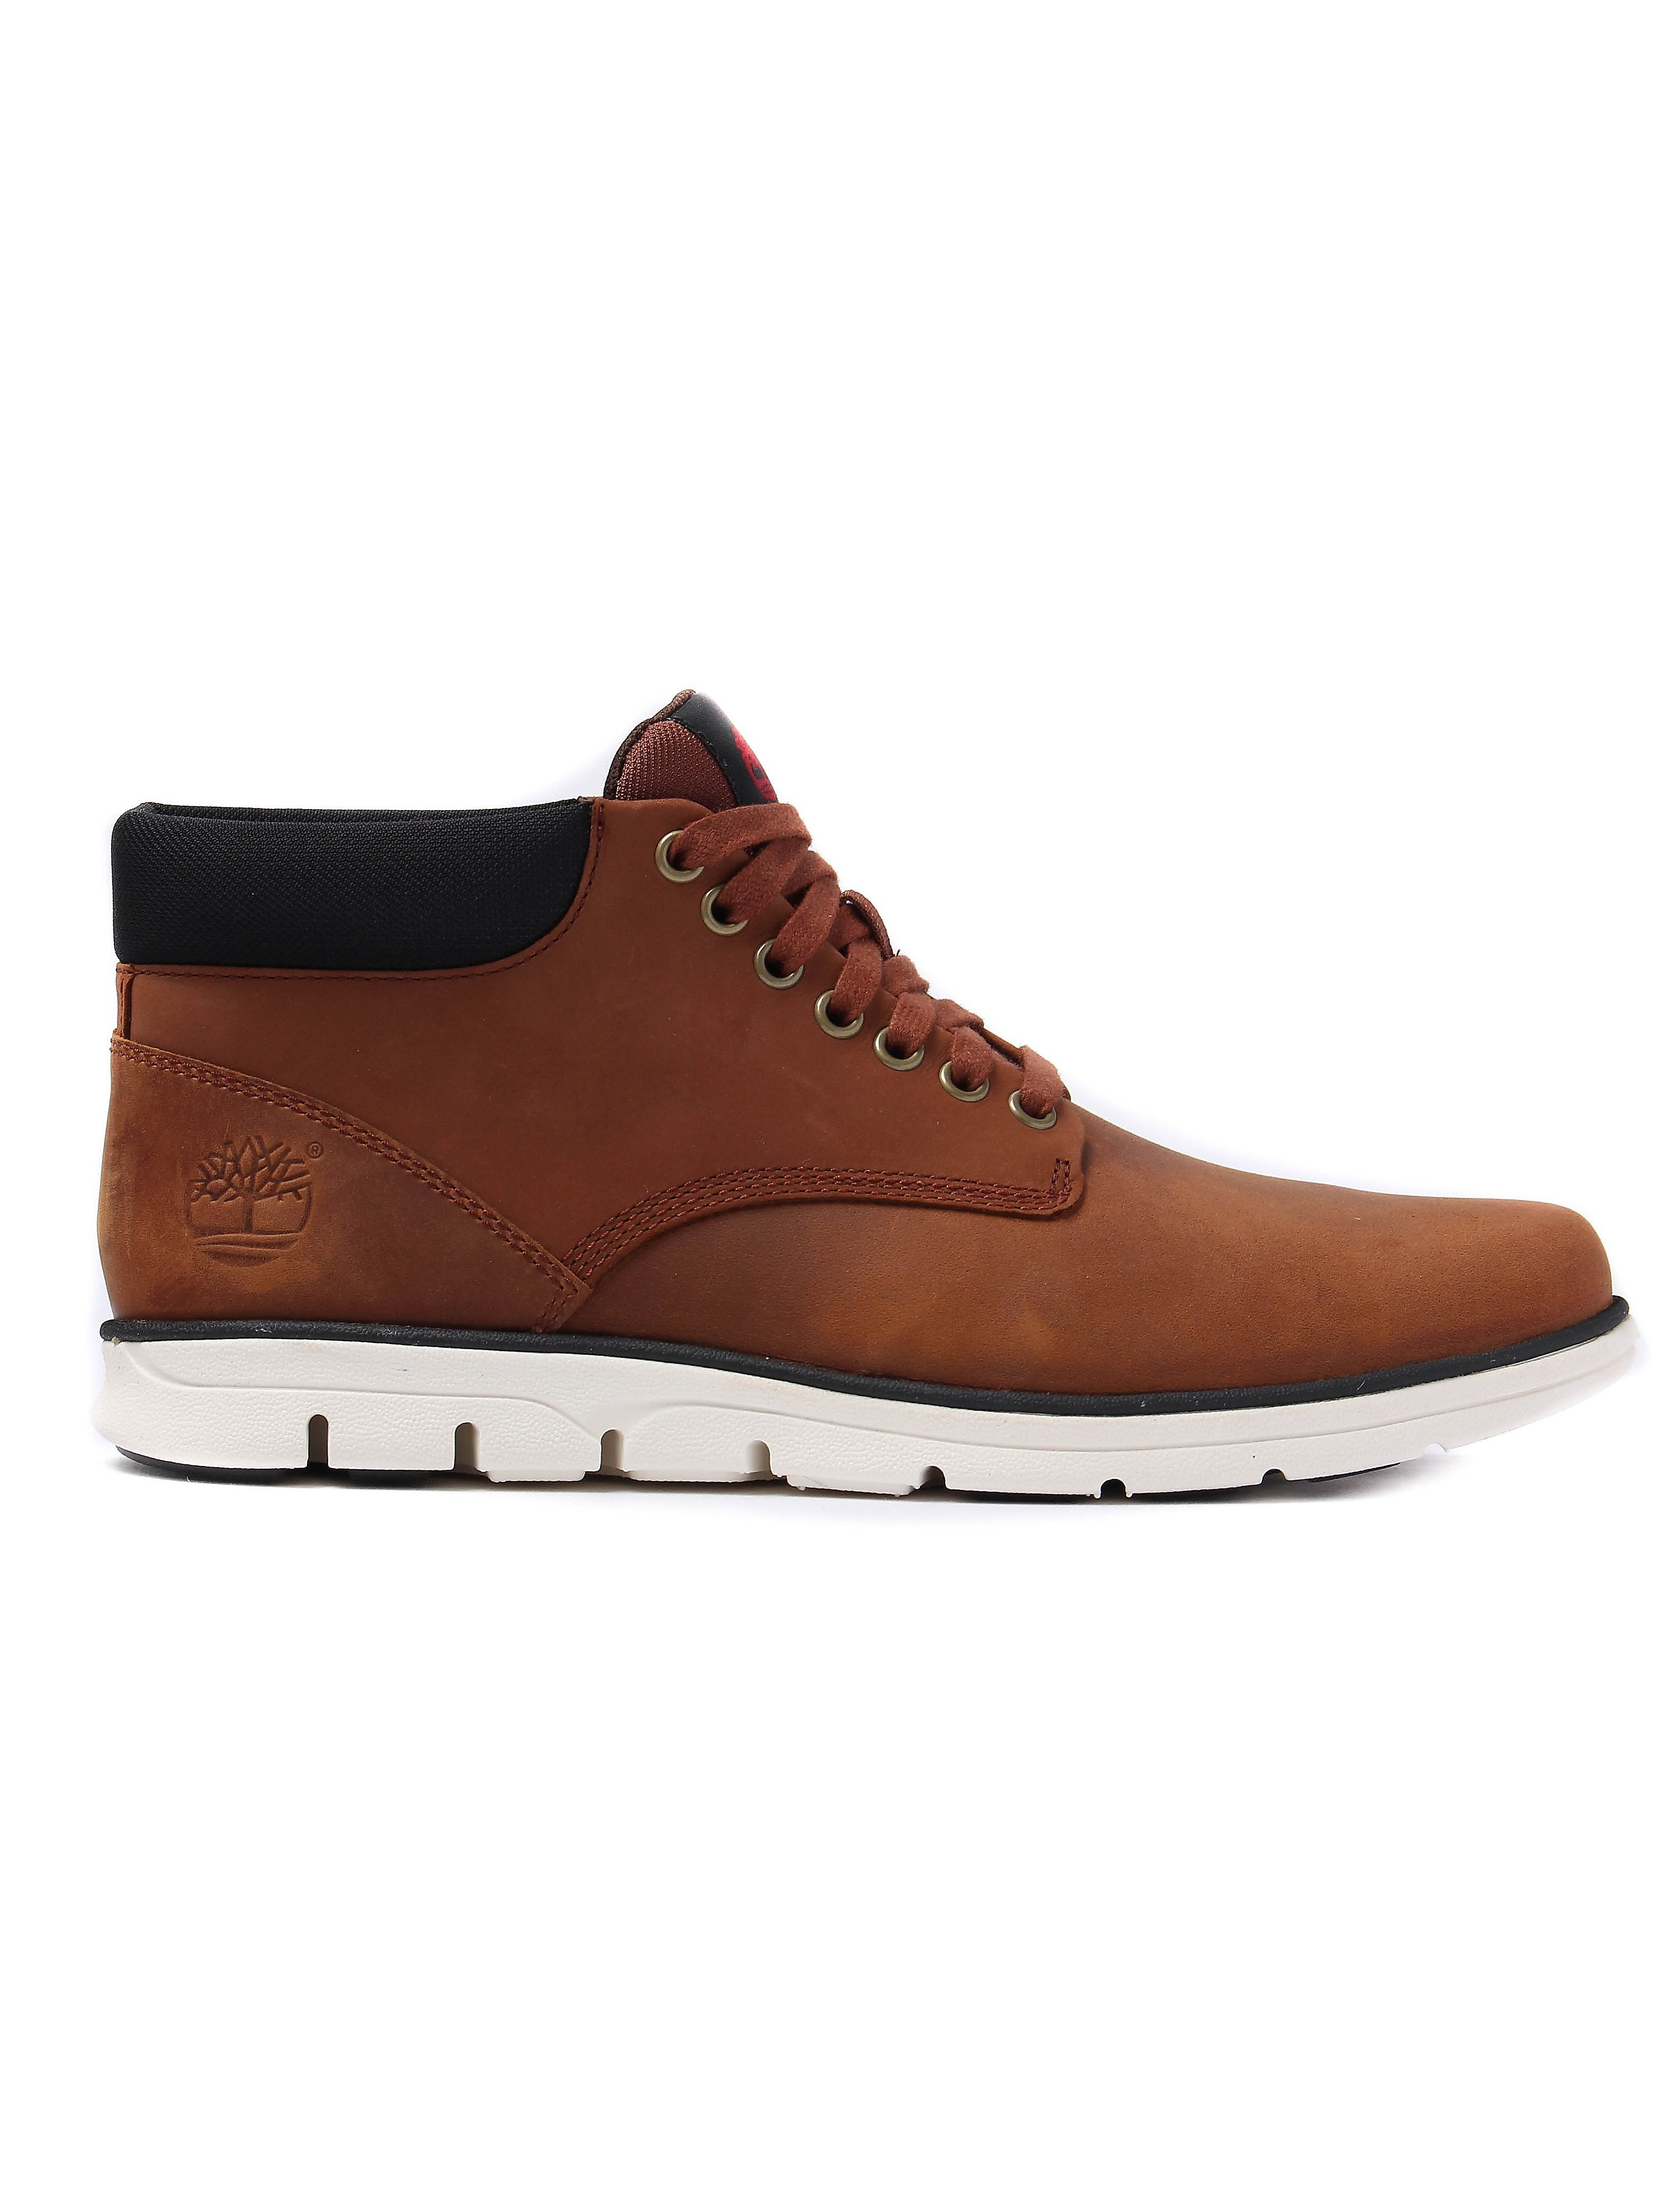 Timberland Men's Bradstreet Smooth Leather Chukka Boots - Brown